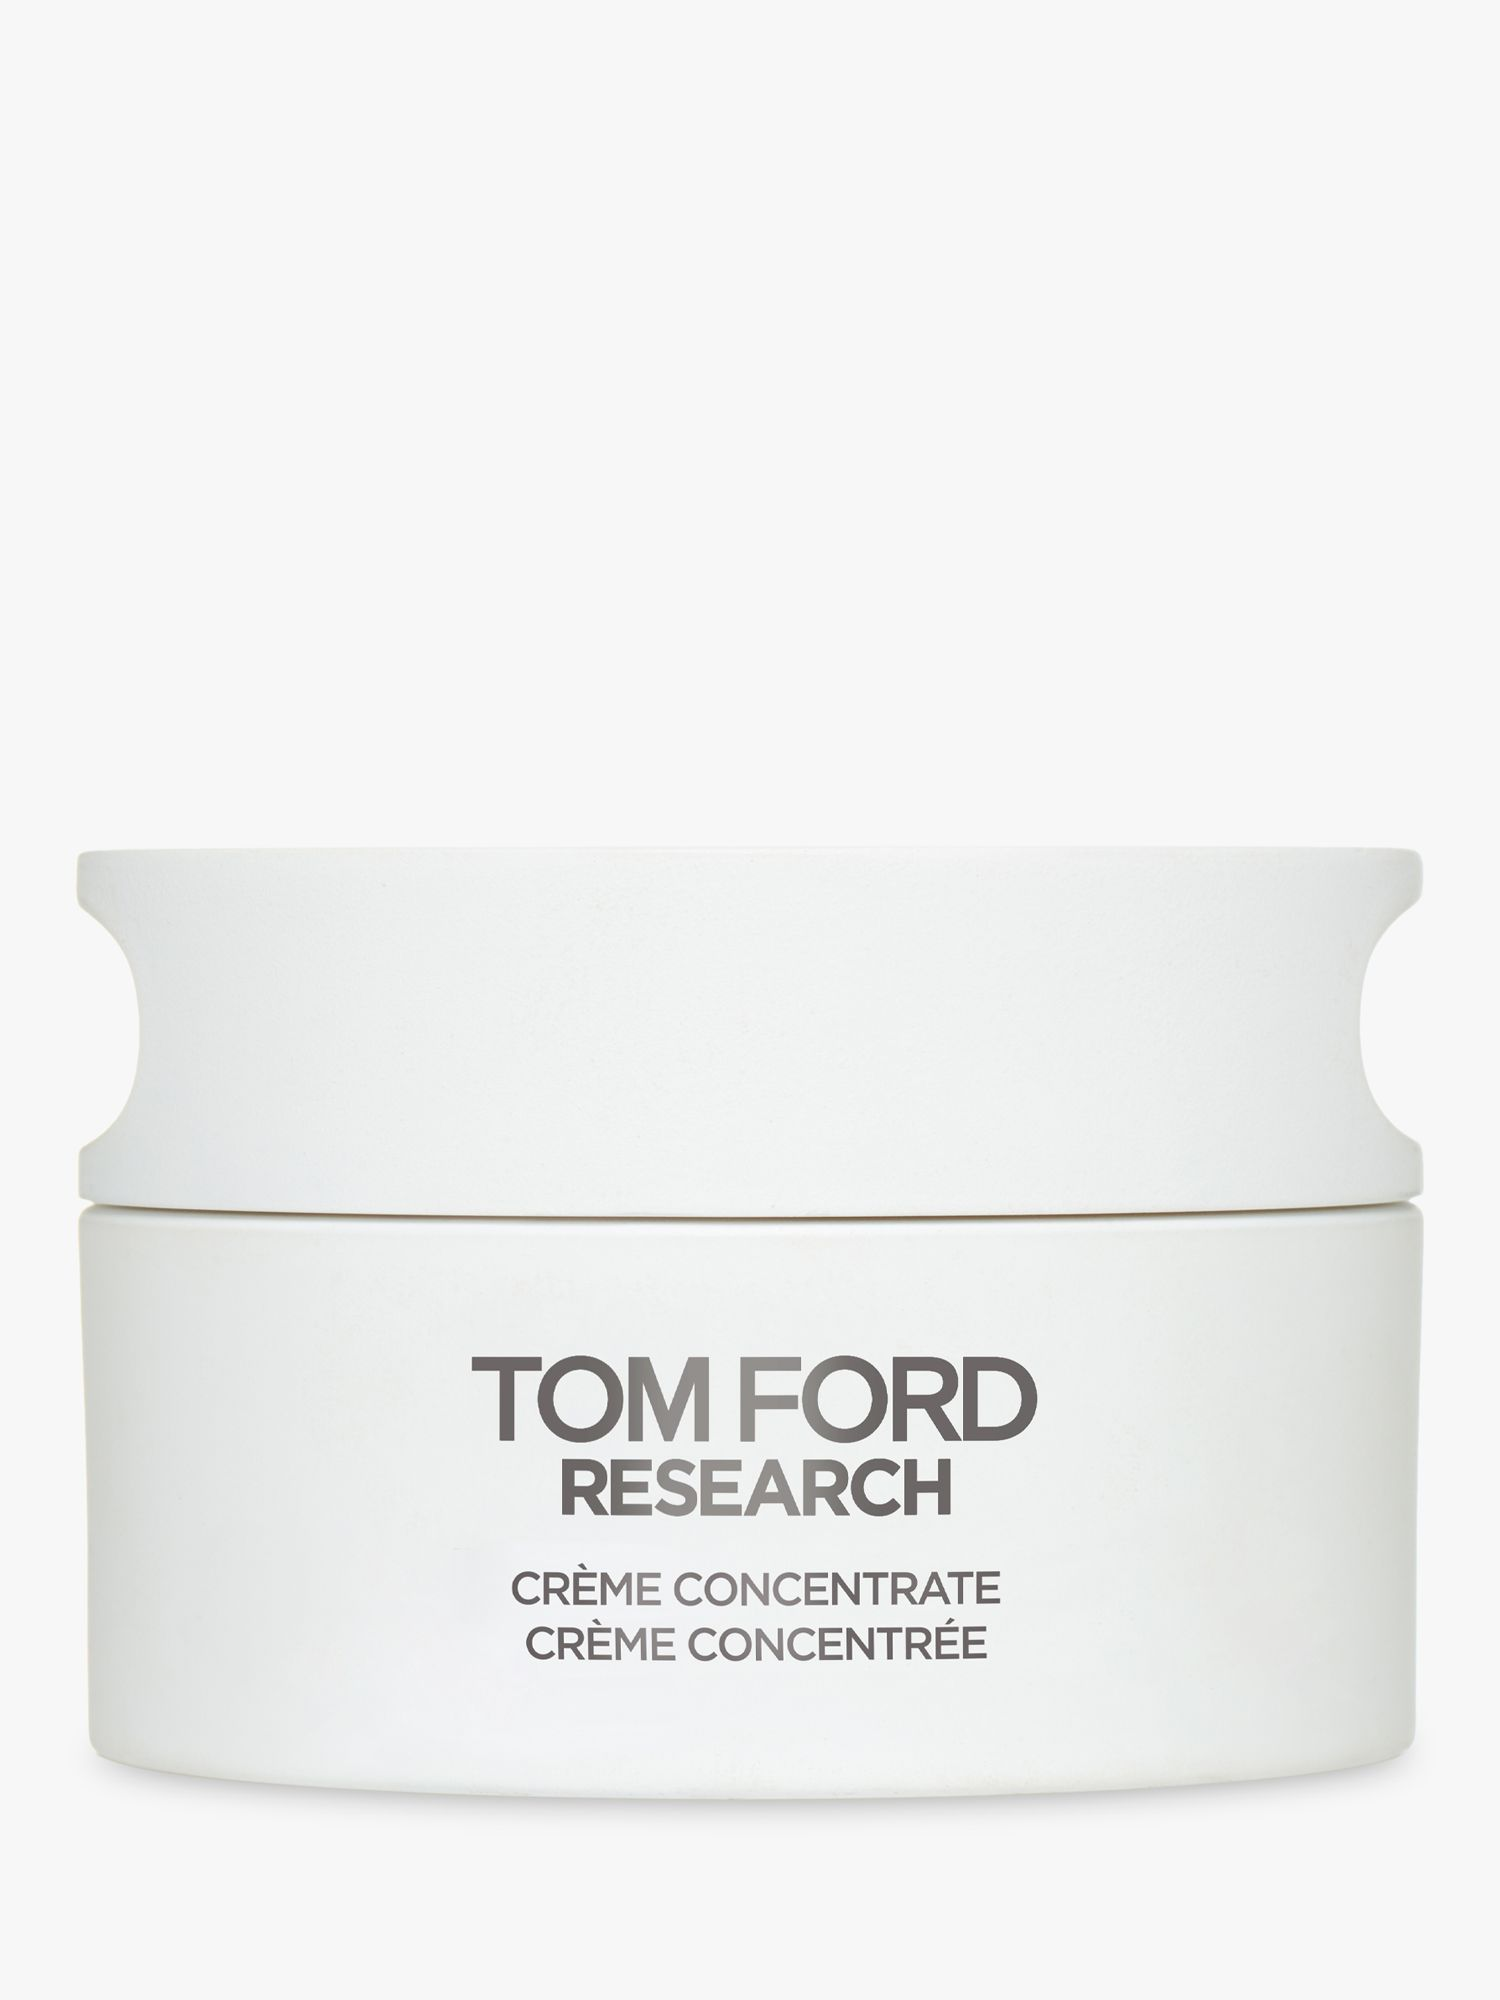 Tom Ford TOM FORD Research Crème Concentrate, 50ml